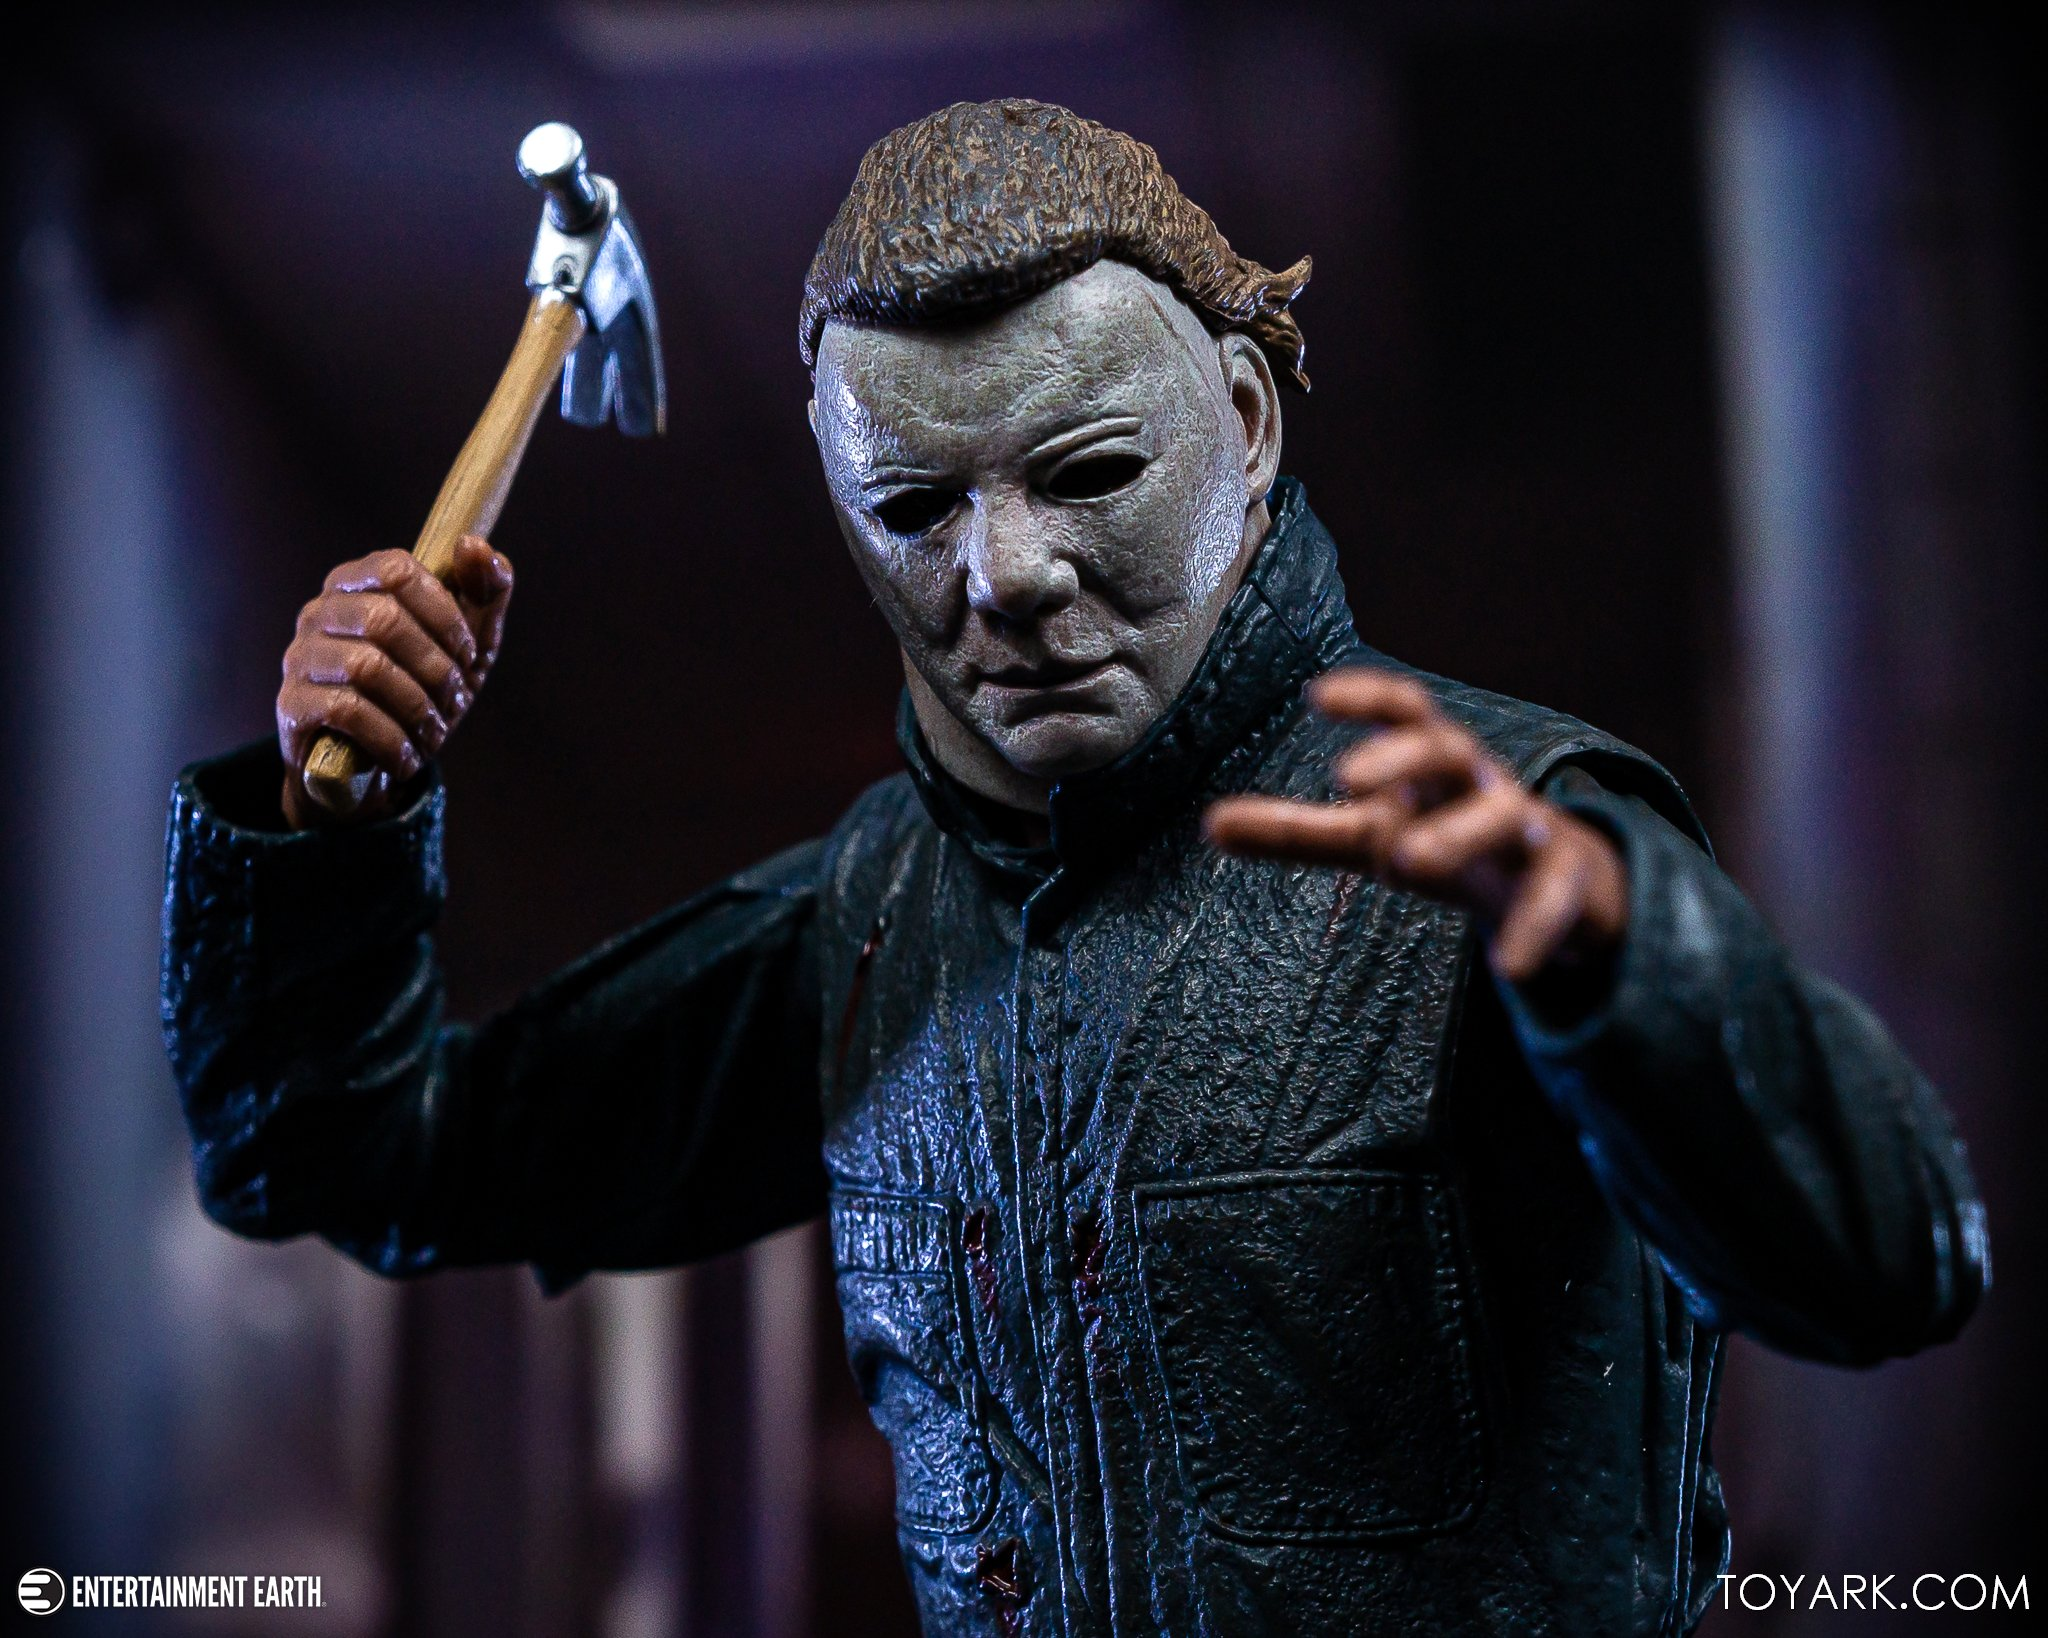 https://news.toyark.com/wp-content/uploads/sites/4/2019/10/NECA-Halloween-II-Michael-Myers-022.jpg